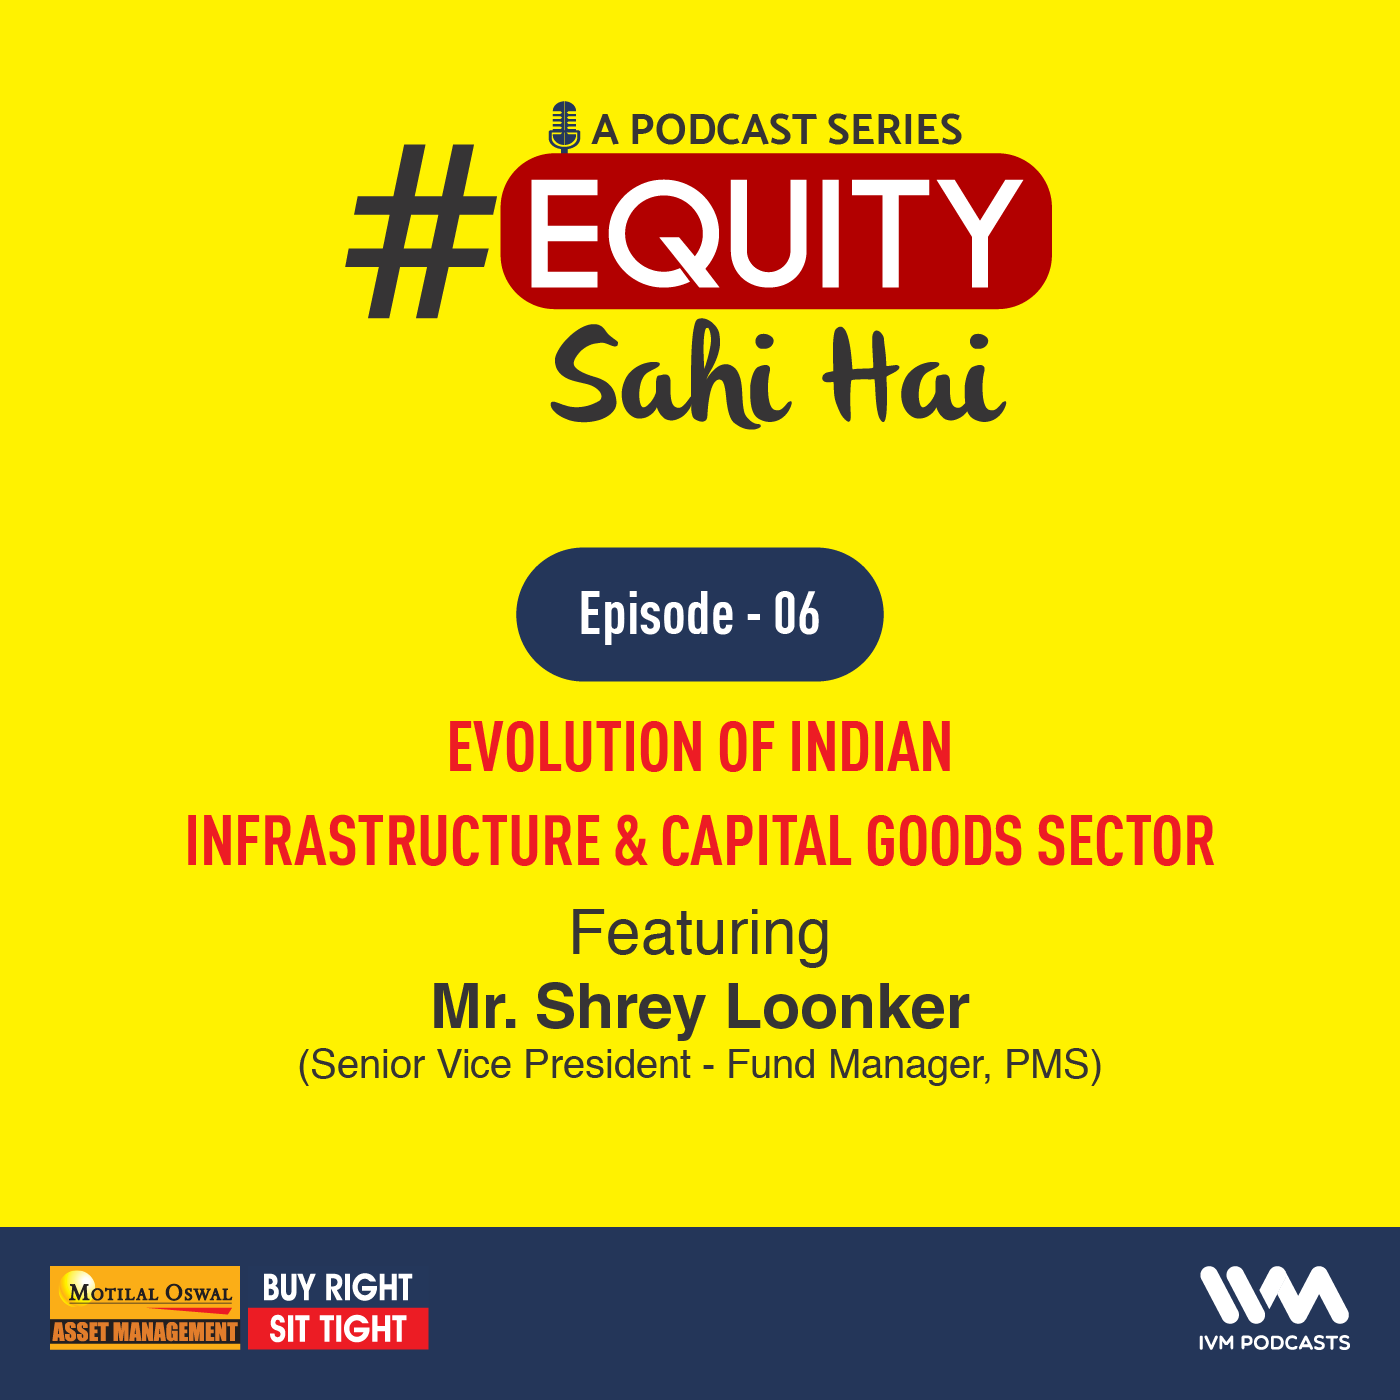 Ep. 06: Evolution of Indian Infrastructure & Capital Goods Sector